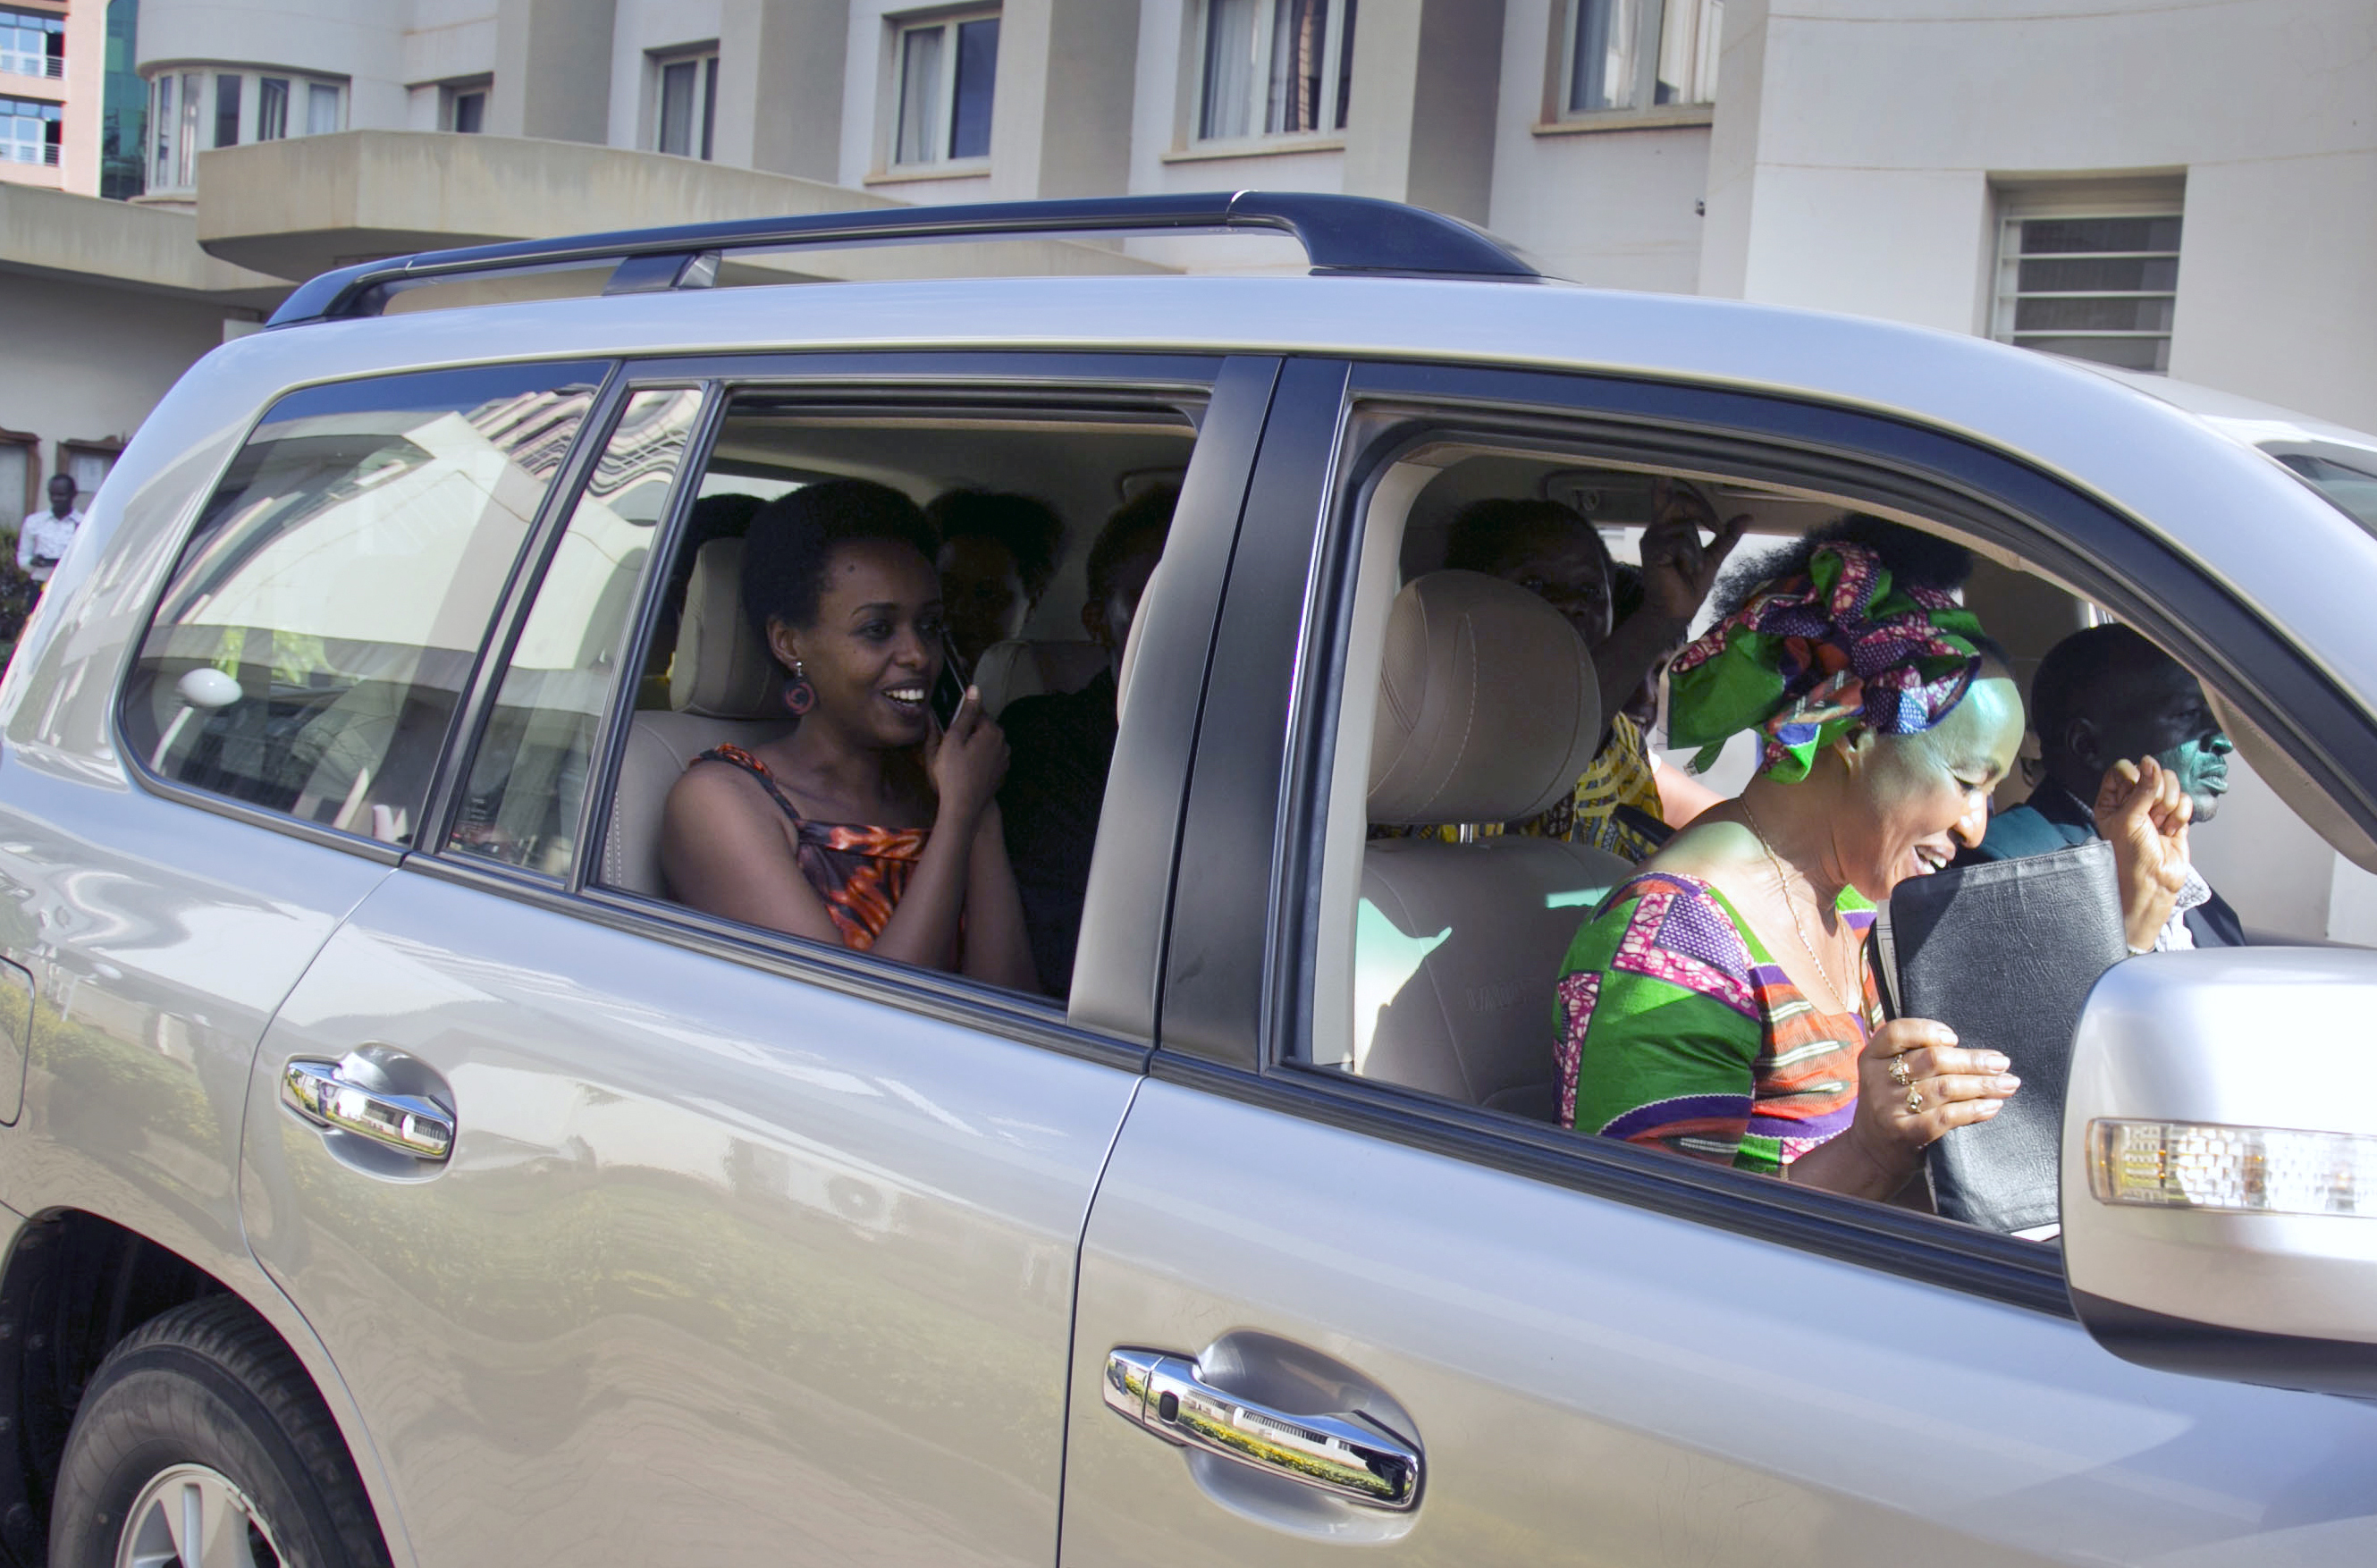 Diane Rwigara, 37, the country's most prominent opposition figure, left, smiles accompanied by her mother, Adeline, 59, right, as they drive off after Diane was acquitted of charges related to her election challenge of President Paul Kagame, at the high court in Kigali, Rwanda Thursday, Dec. 6, 2018. Rwanda's high court on Thursday acquitted Rwigara of all charges, as judges said the prosecution failed to provide proof of insurrection and forgery. (AP Photo)